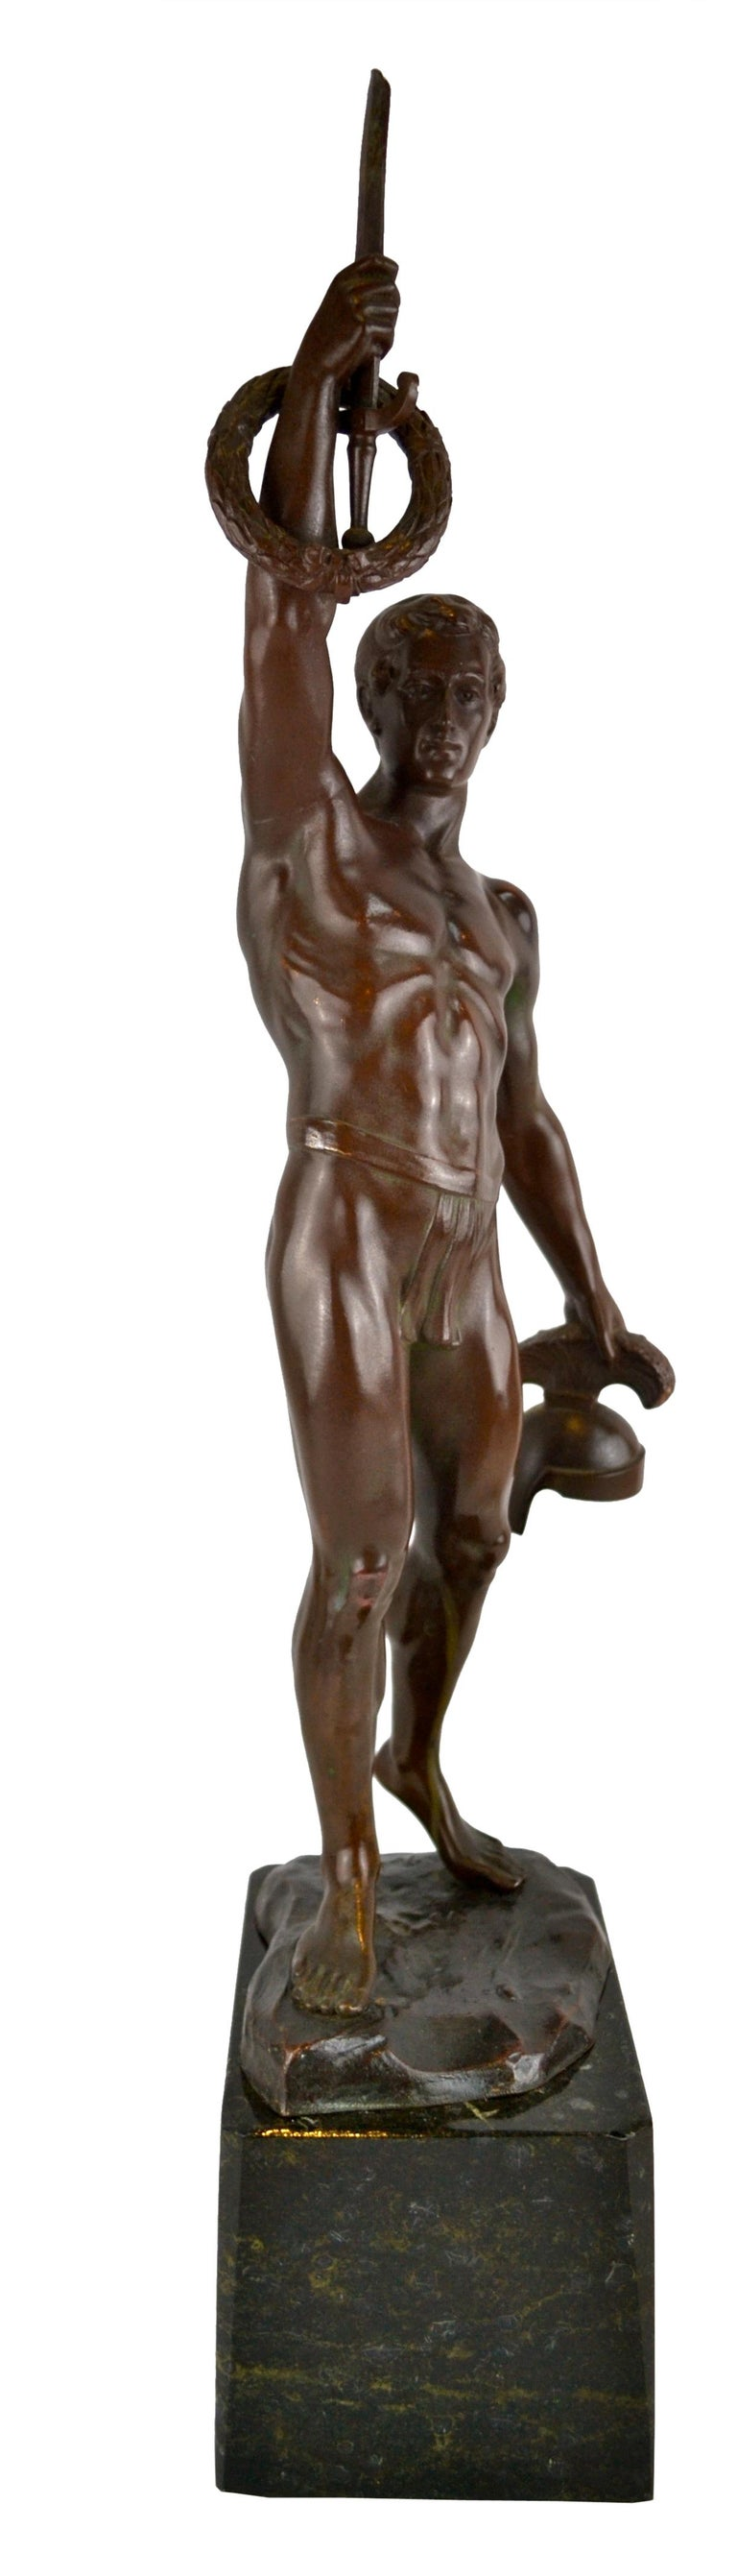 """A classical bronze statue of a muscular Olympic Greek fighting athlete titled """"To The Victor"""". The athlete has raised a hand holding a sword by its blade with a winner's laurel wreath around the hilt, and is holding his helmet in his other hand. The"""